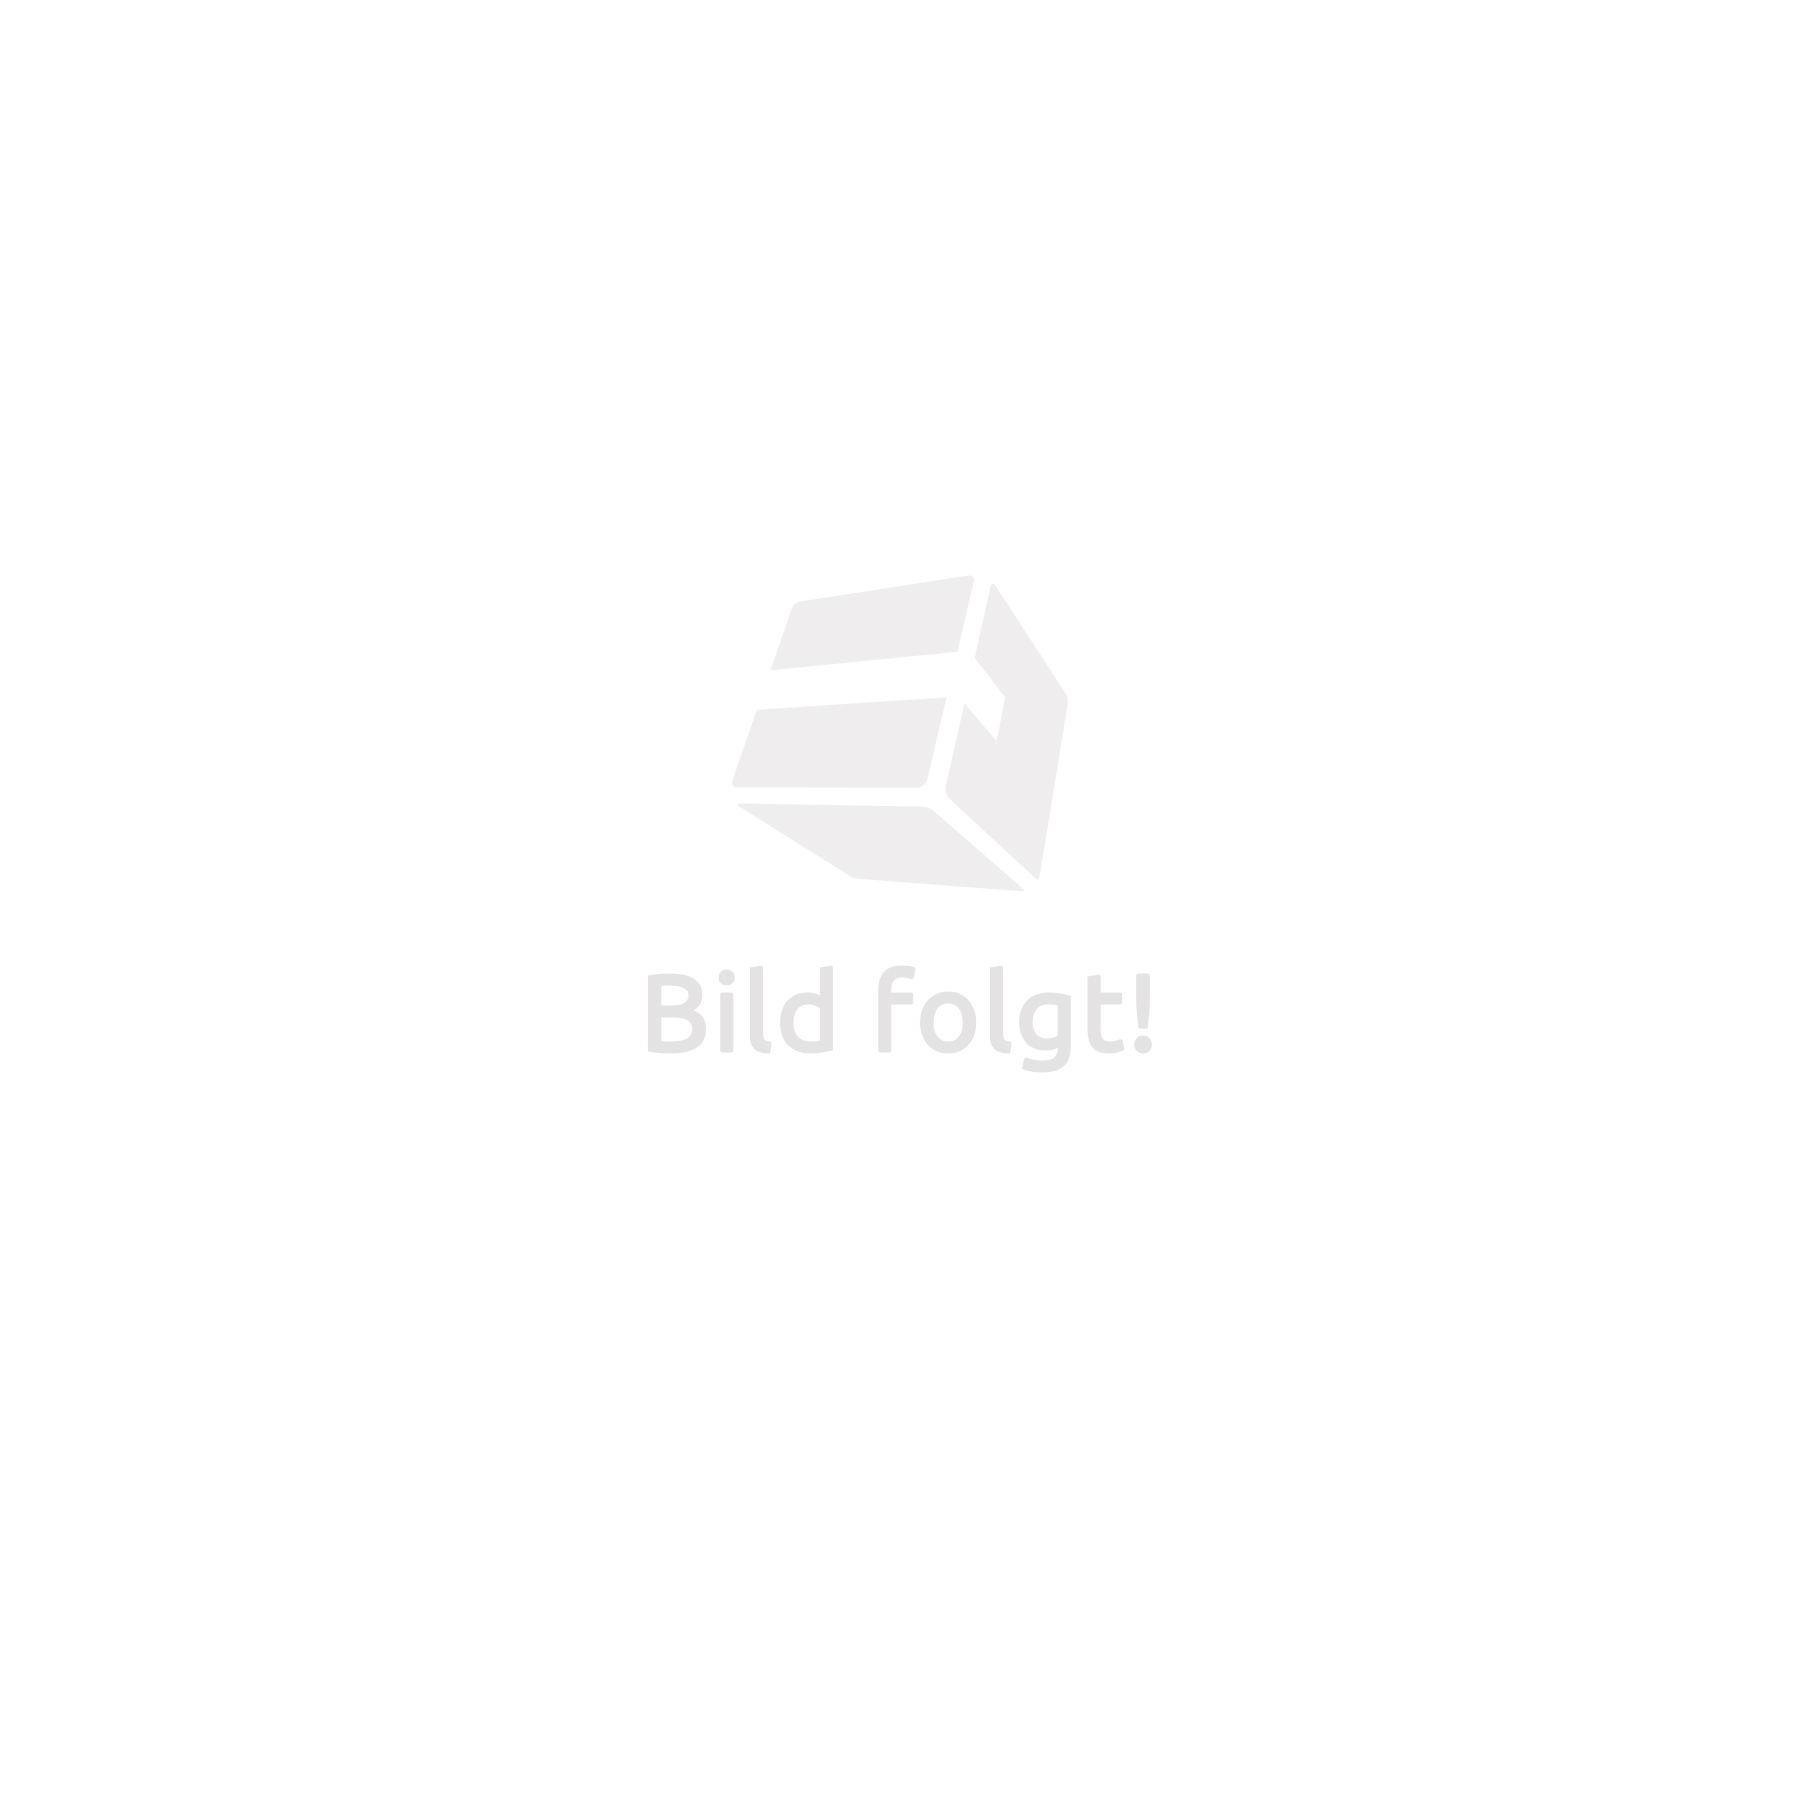 Mosquitera enrollable 90 x 160 cm